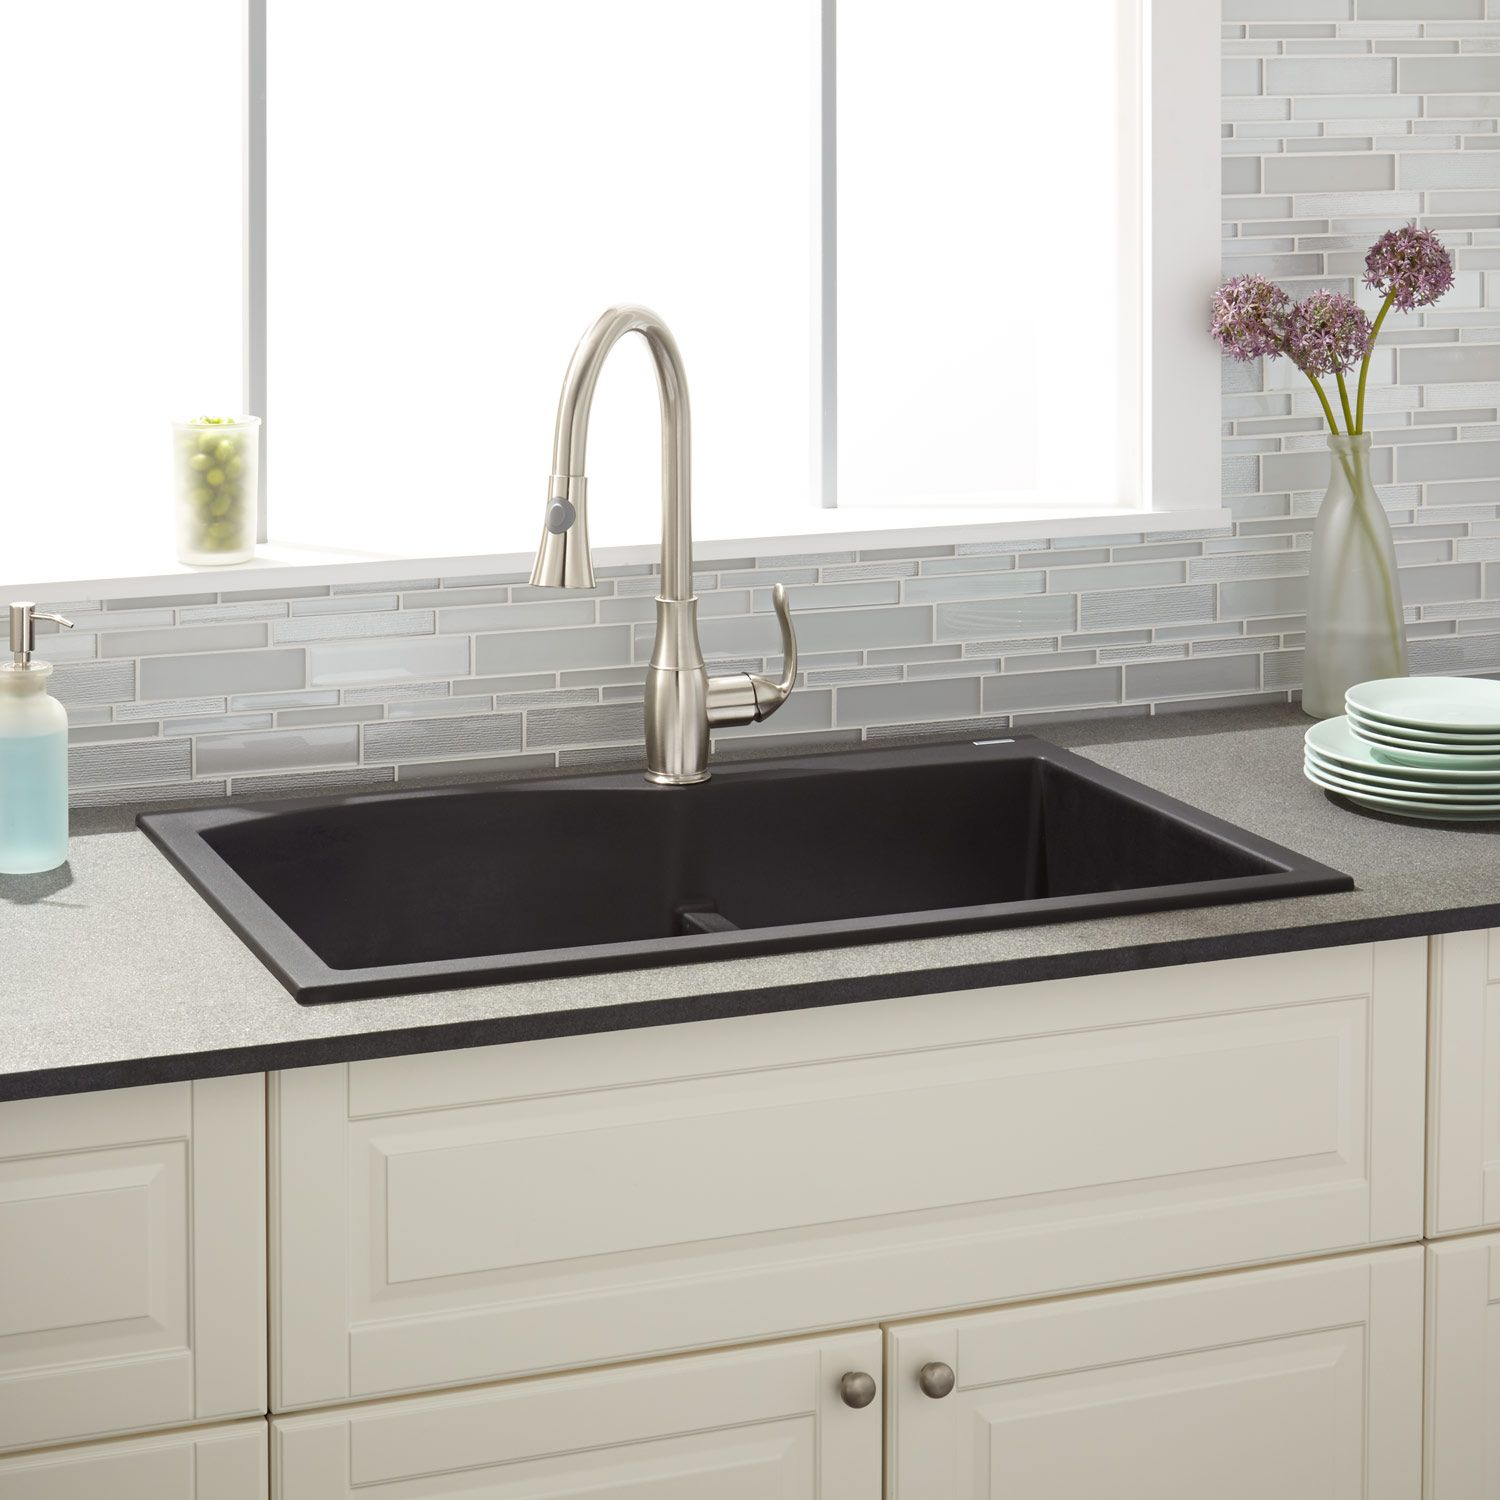 33 Walland 60 40 Double Bowl Drop In Granite Composite Sink In